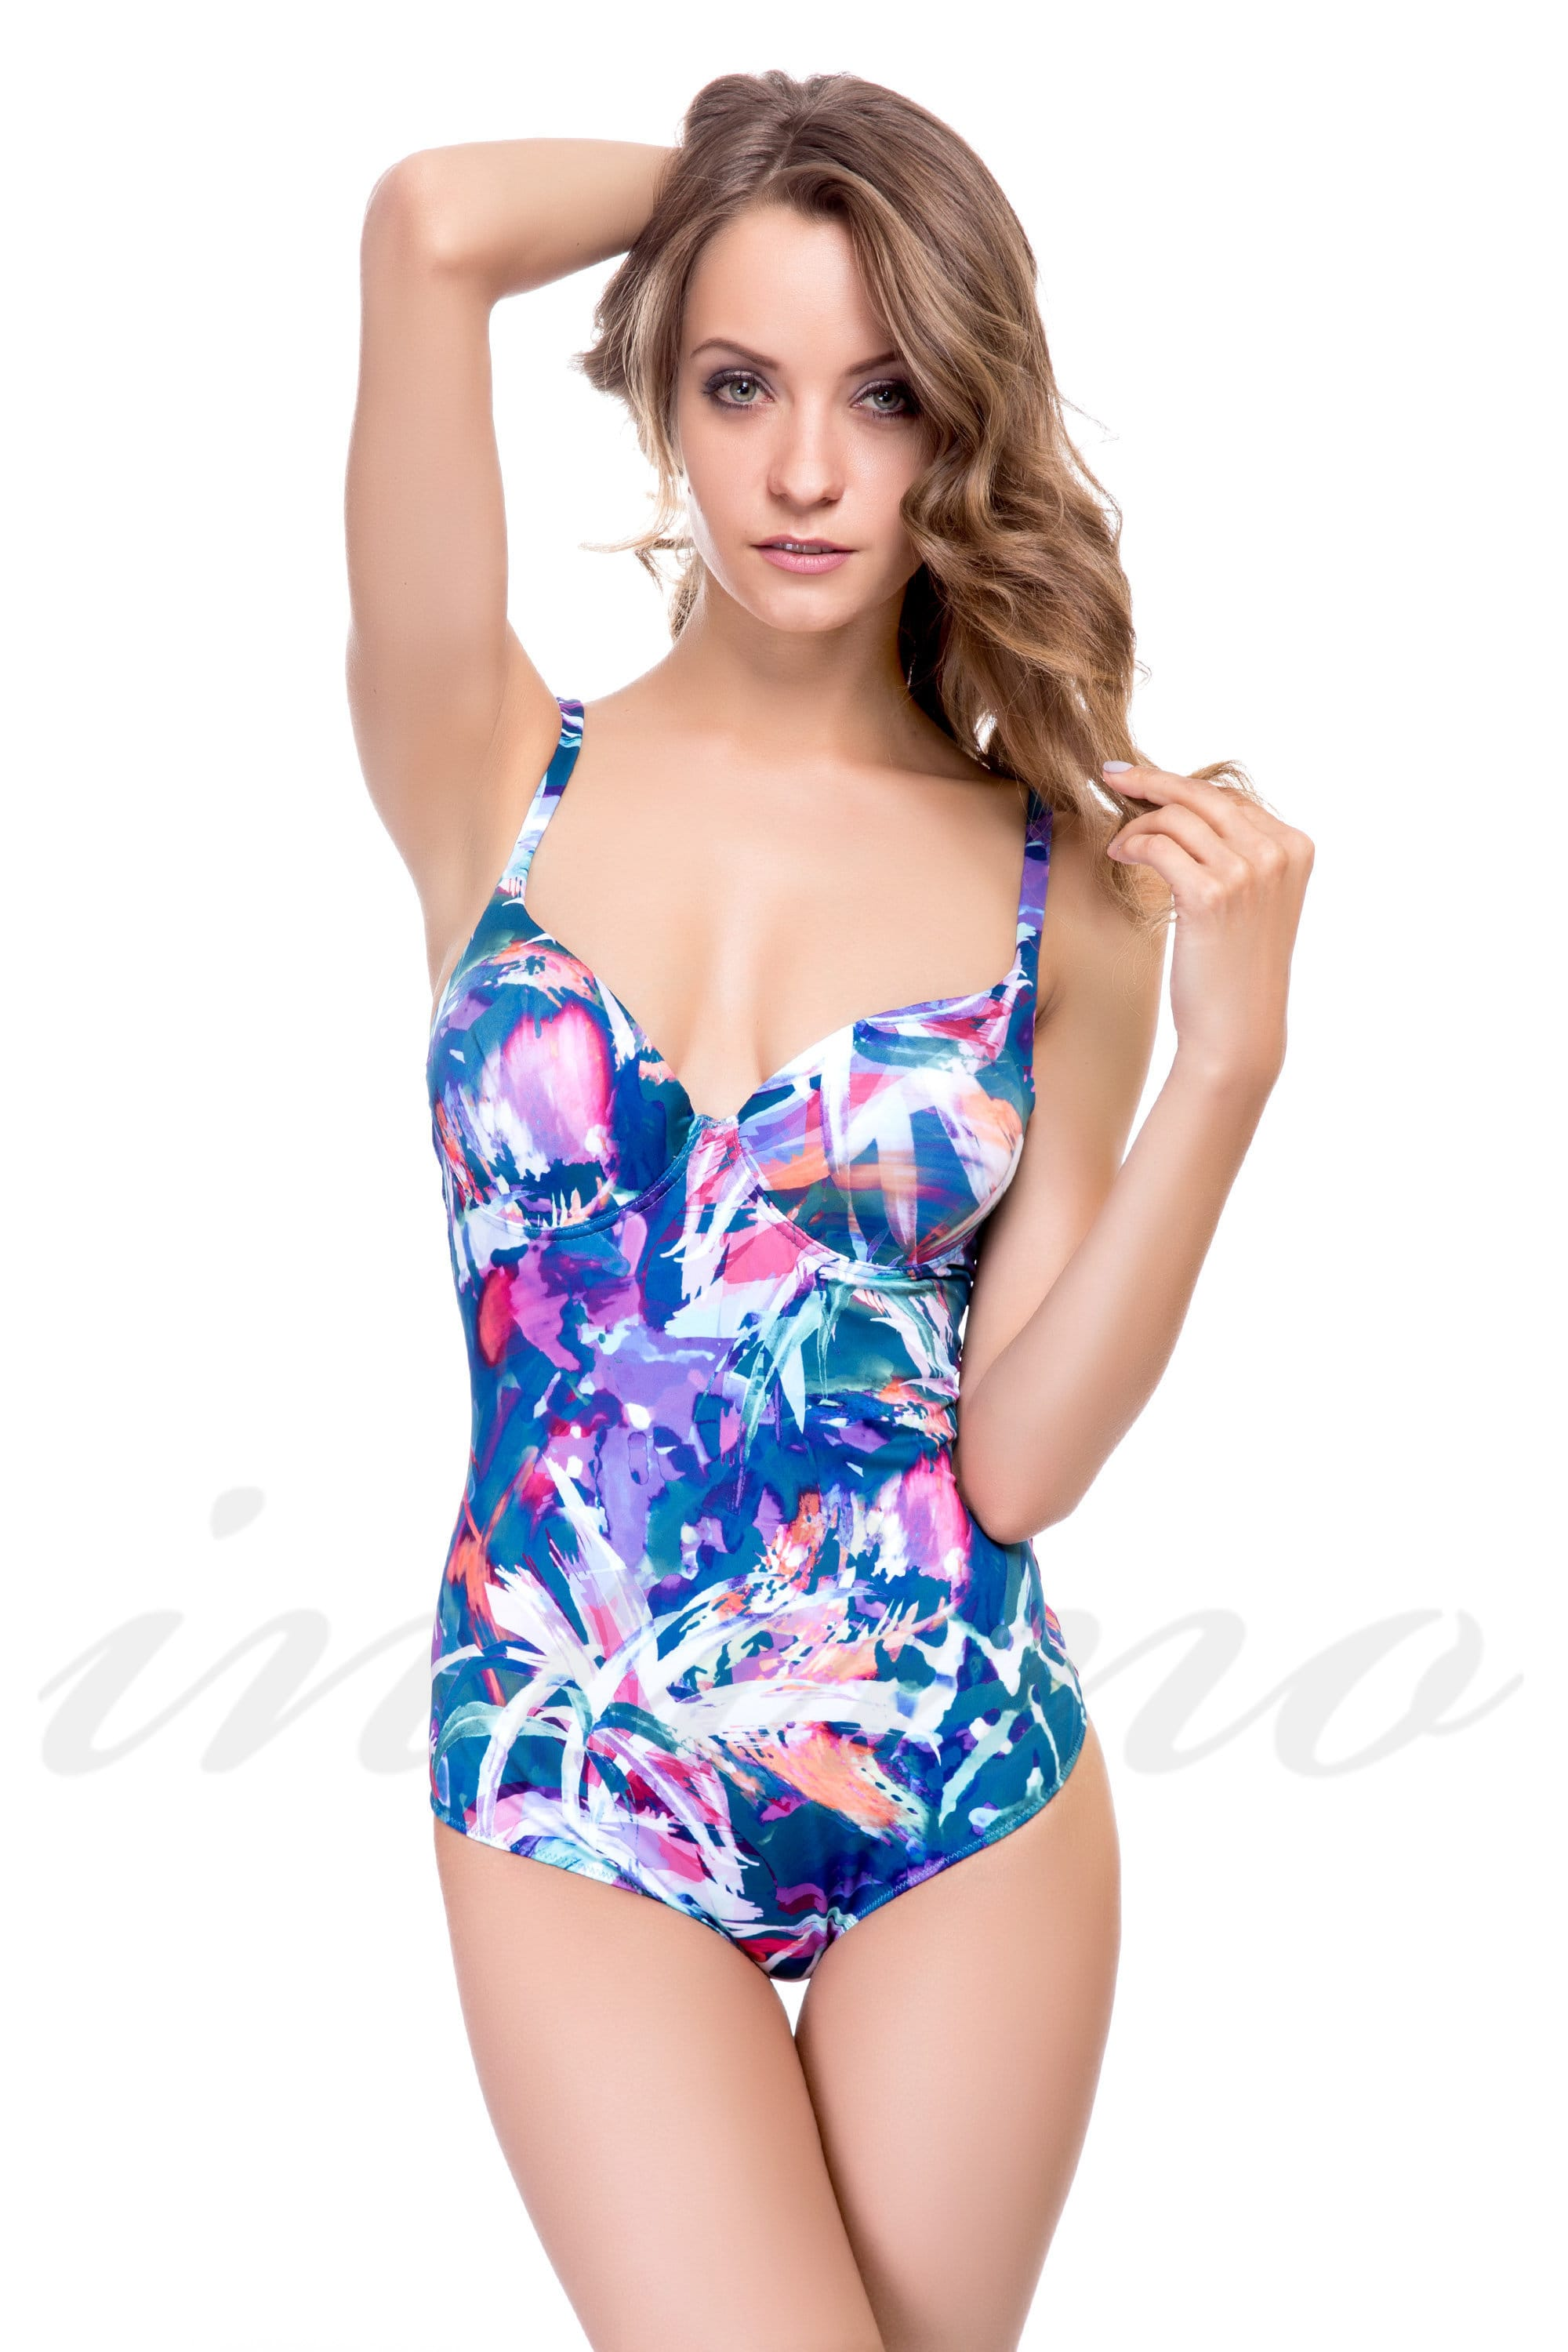 Swimsuit with tight cup Lormar Banten Intero (45308) price ...